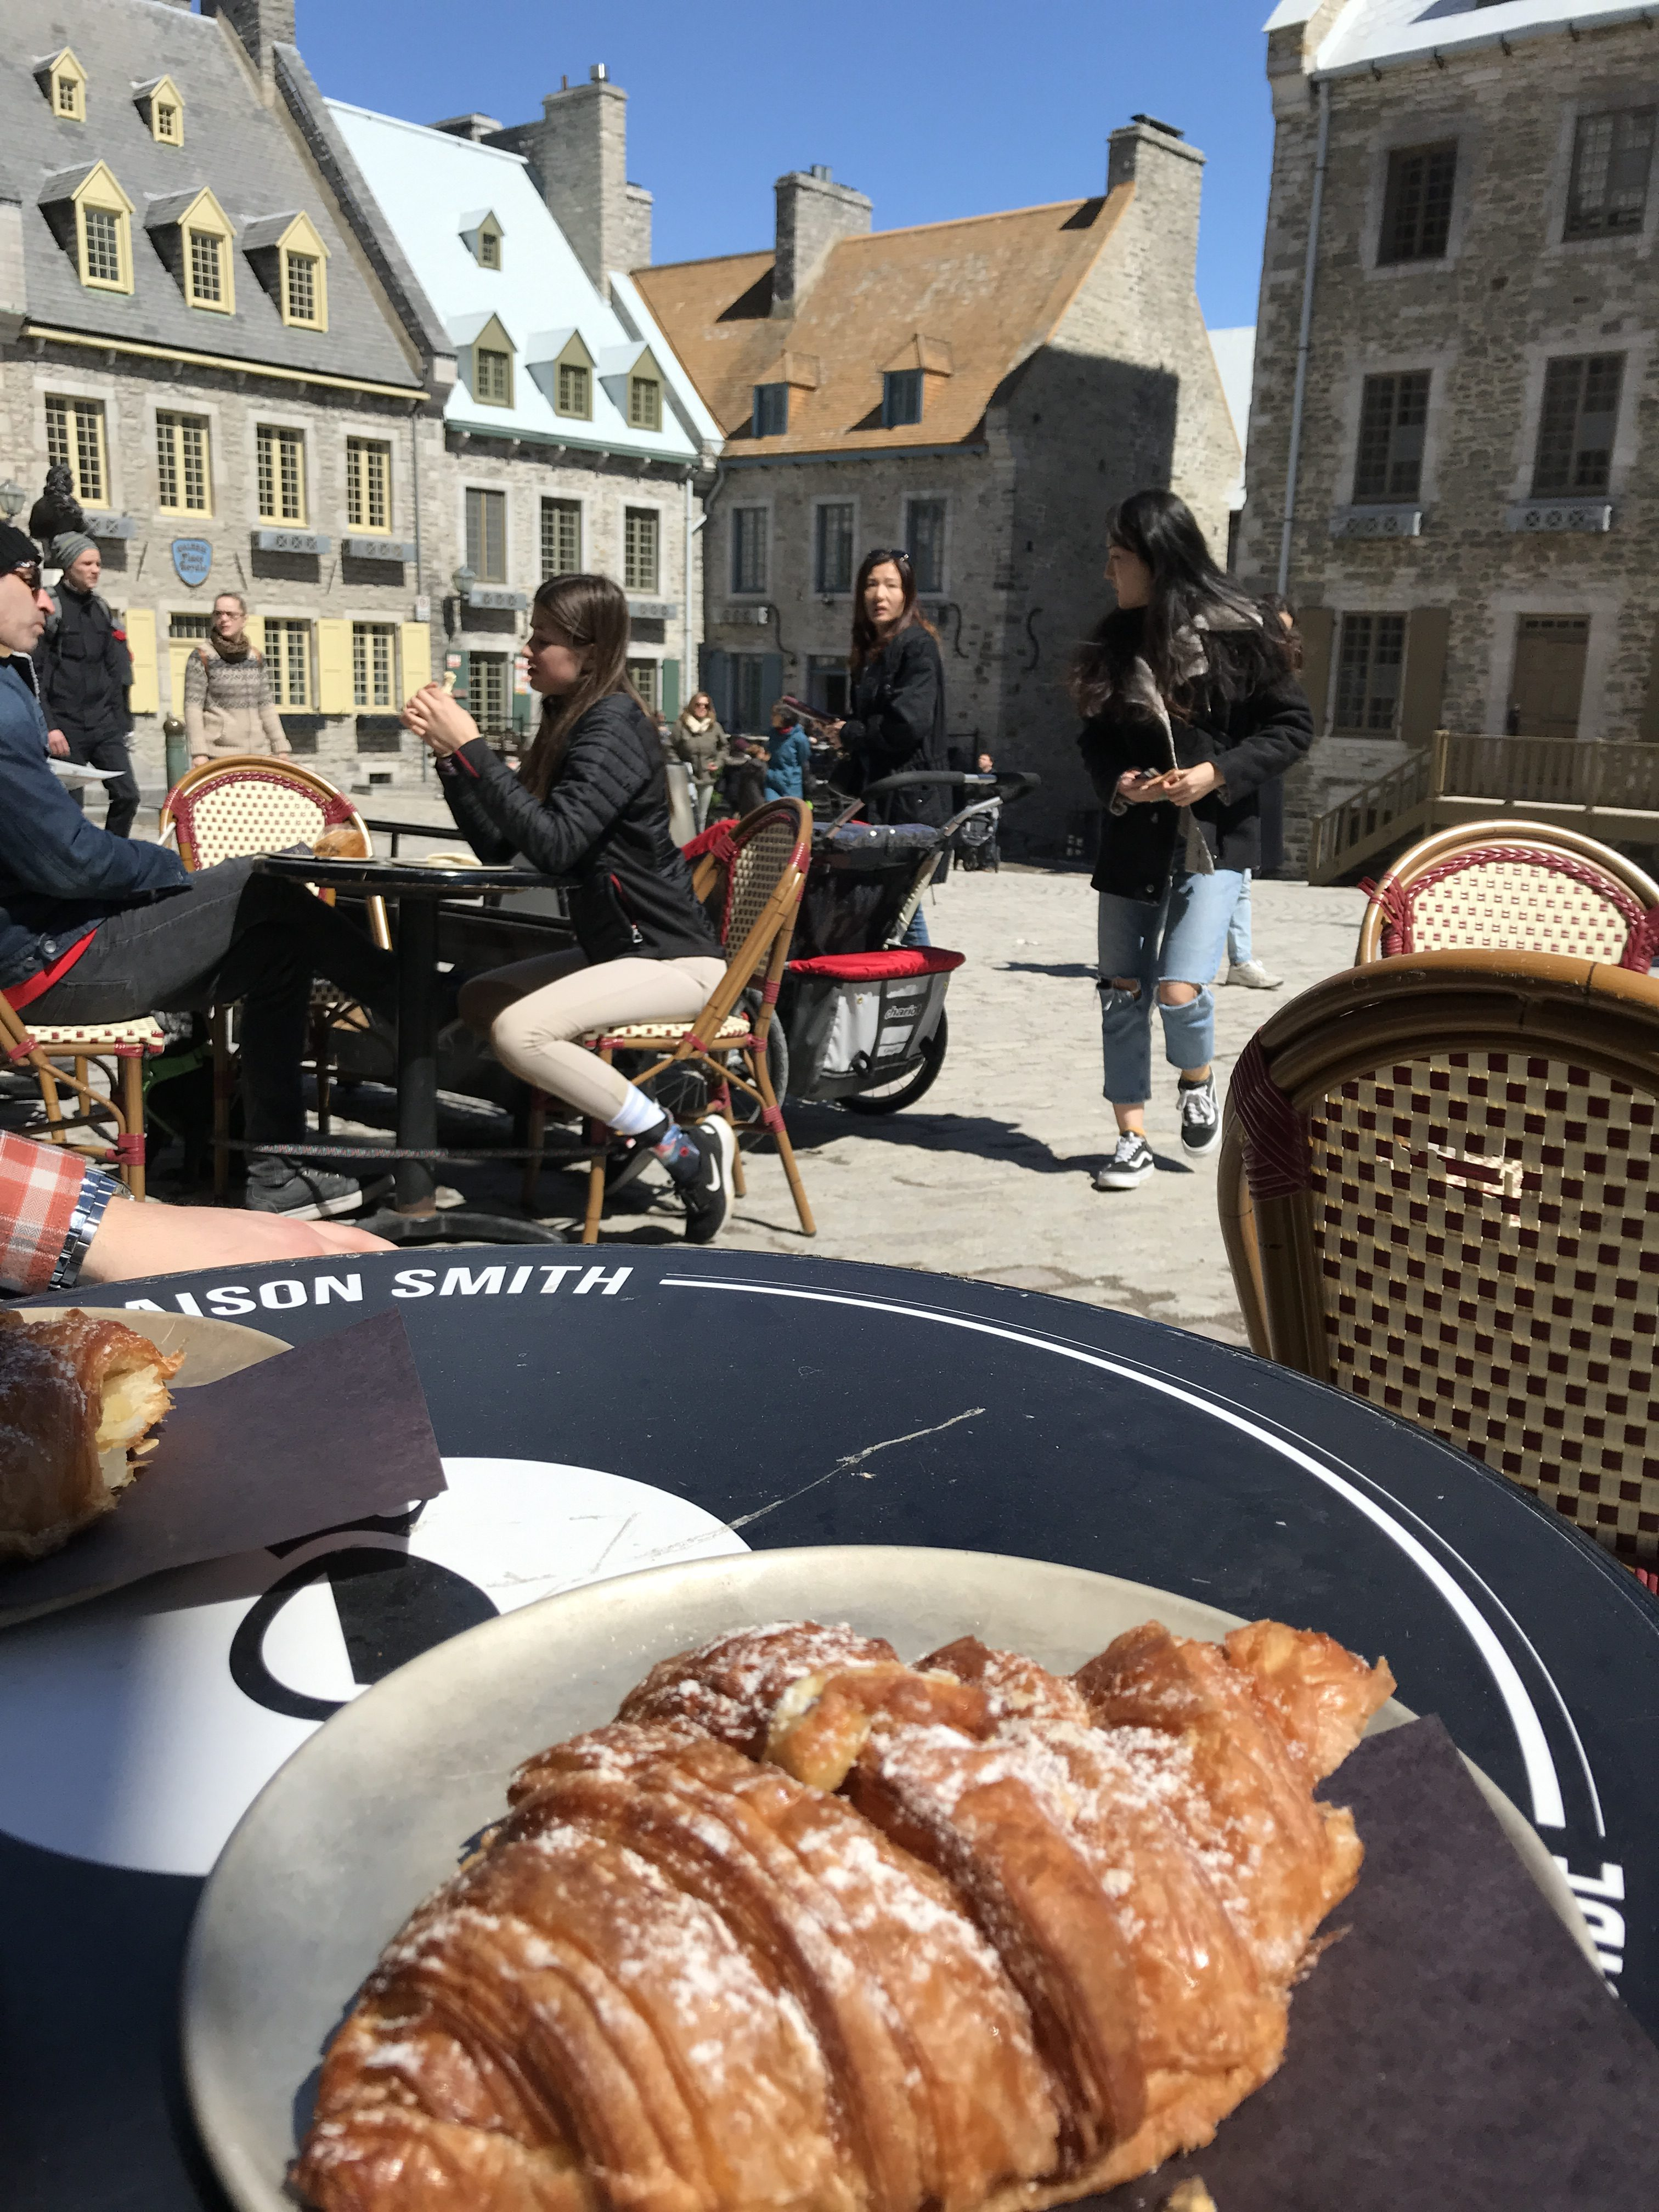 Eating a croissant at Place Royale in Quebec City.